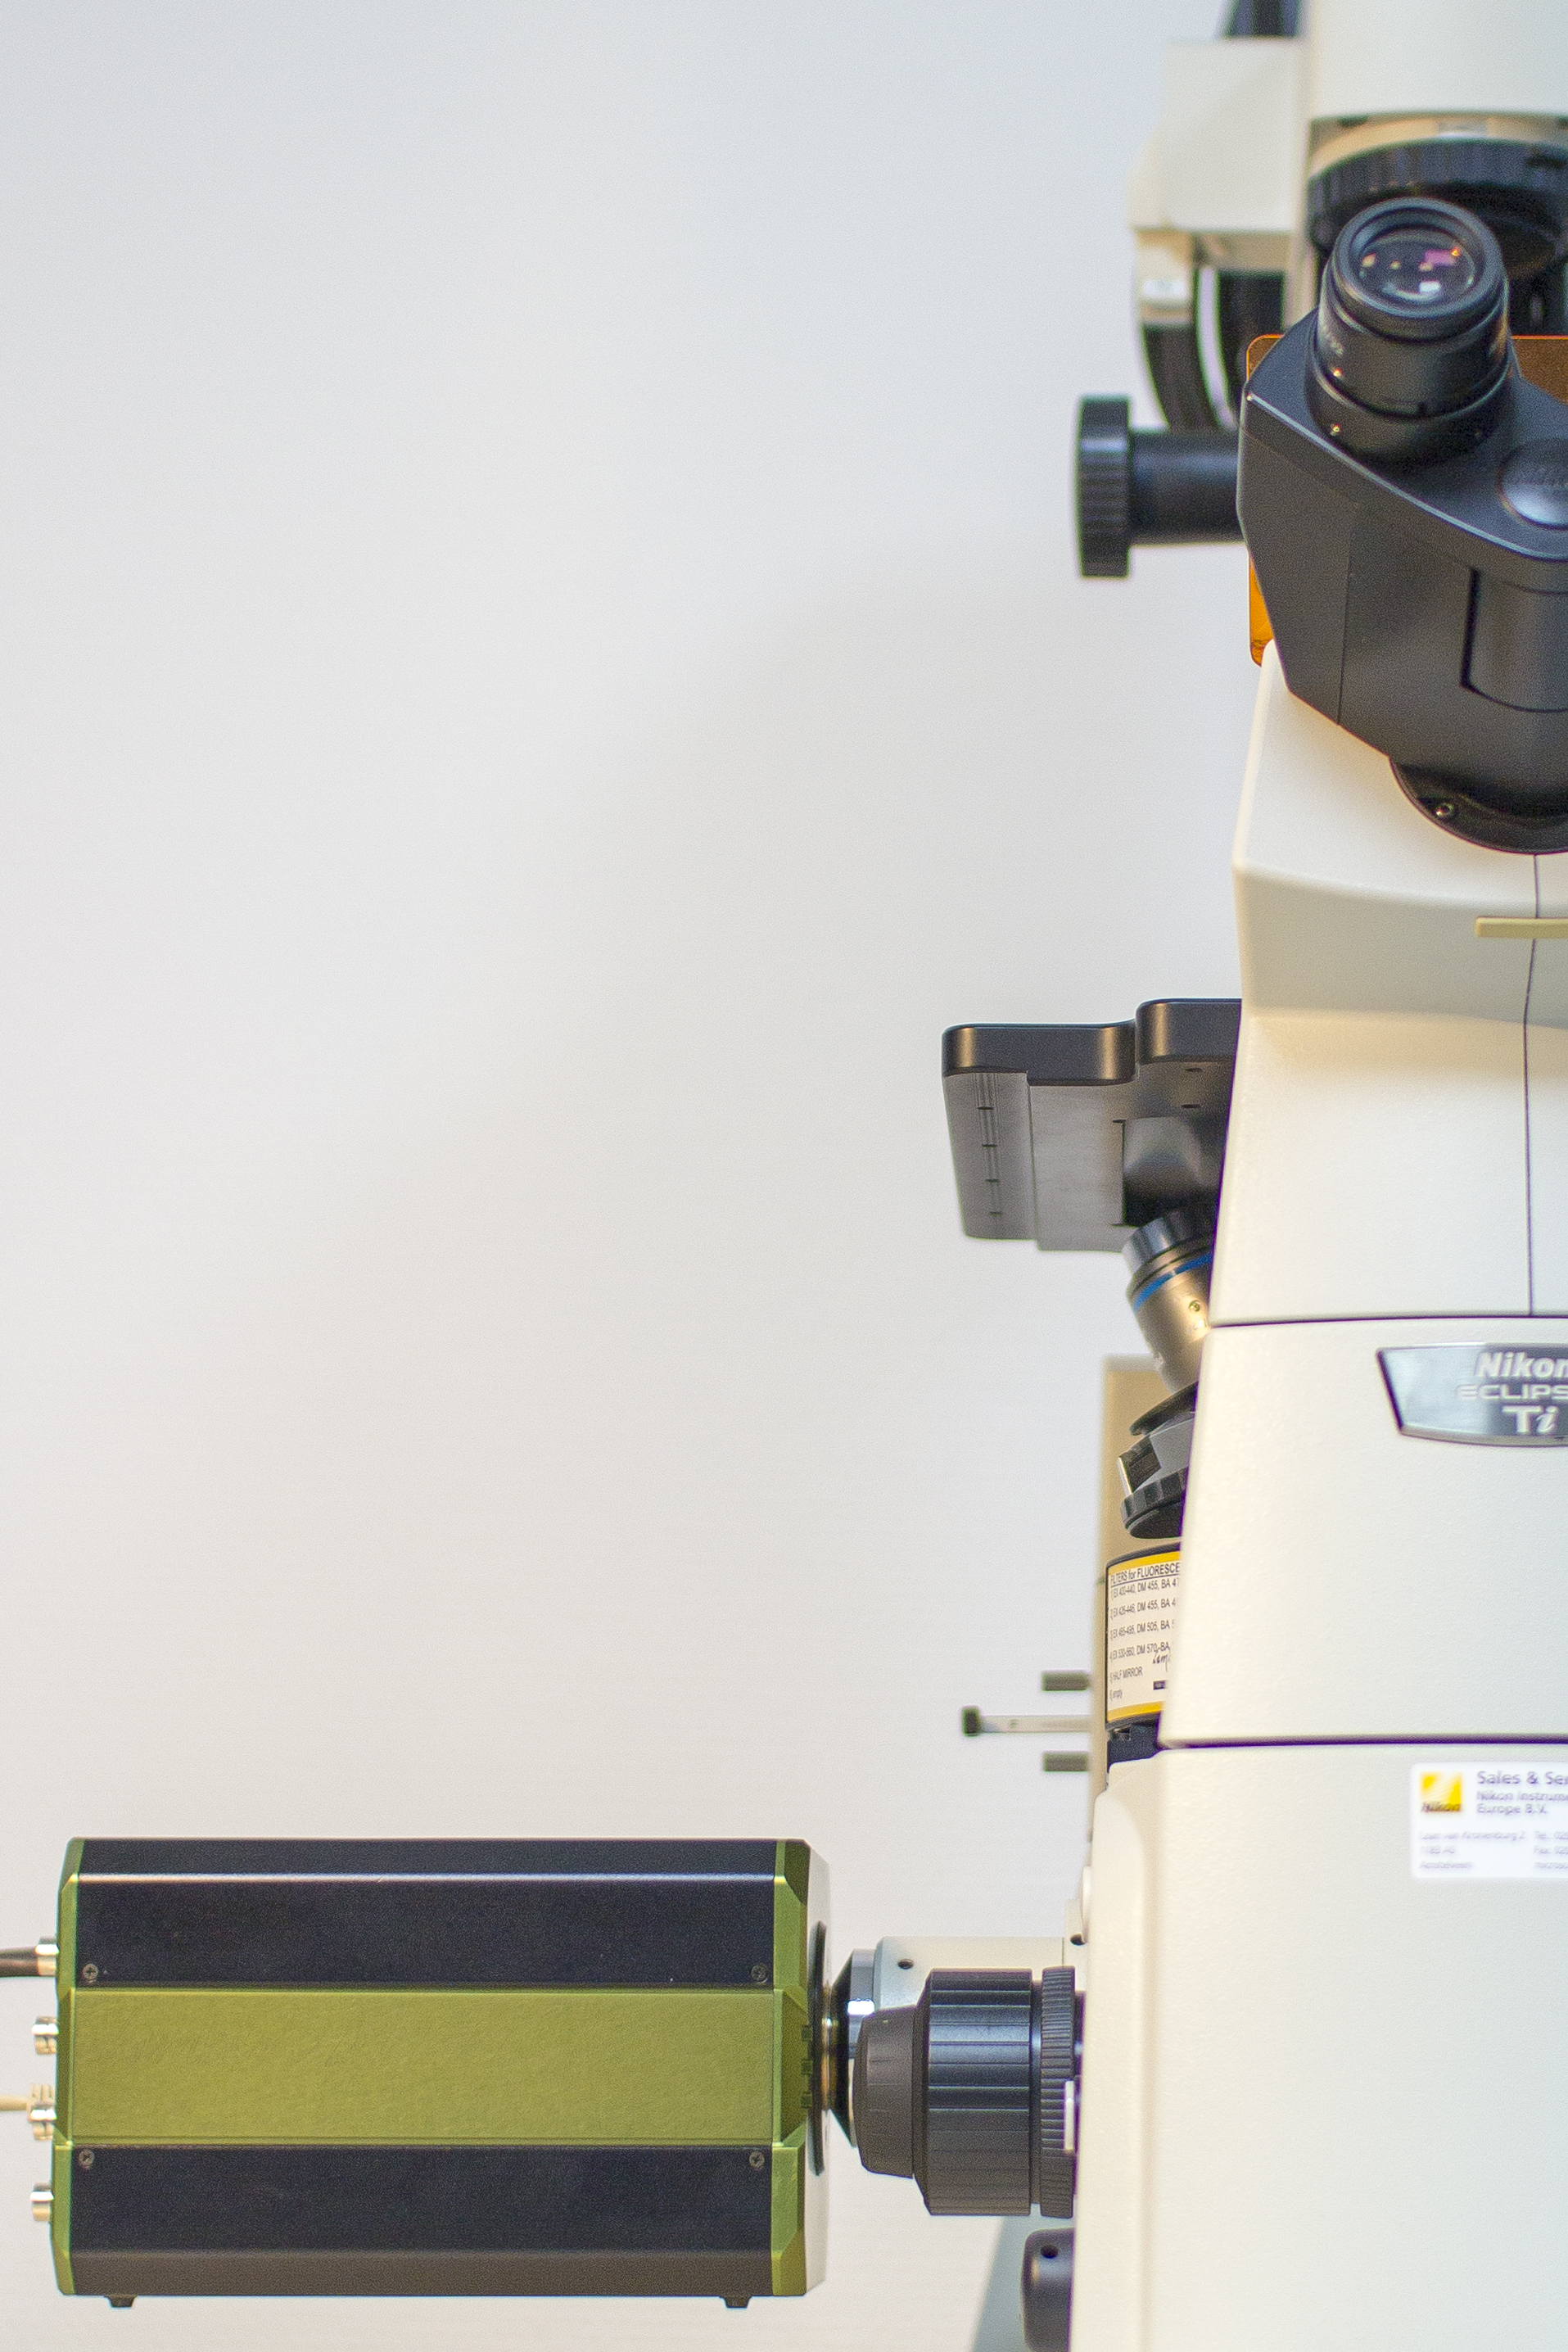 The LIFA-TD offers a turn-key solution for fluorescence lifetime imaging microscopy based on a gated intensified camera (ICCD/ICMOS) and is compatible with every widefield fluorescence microscope